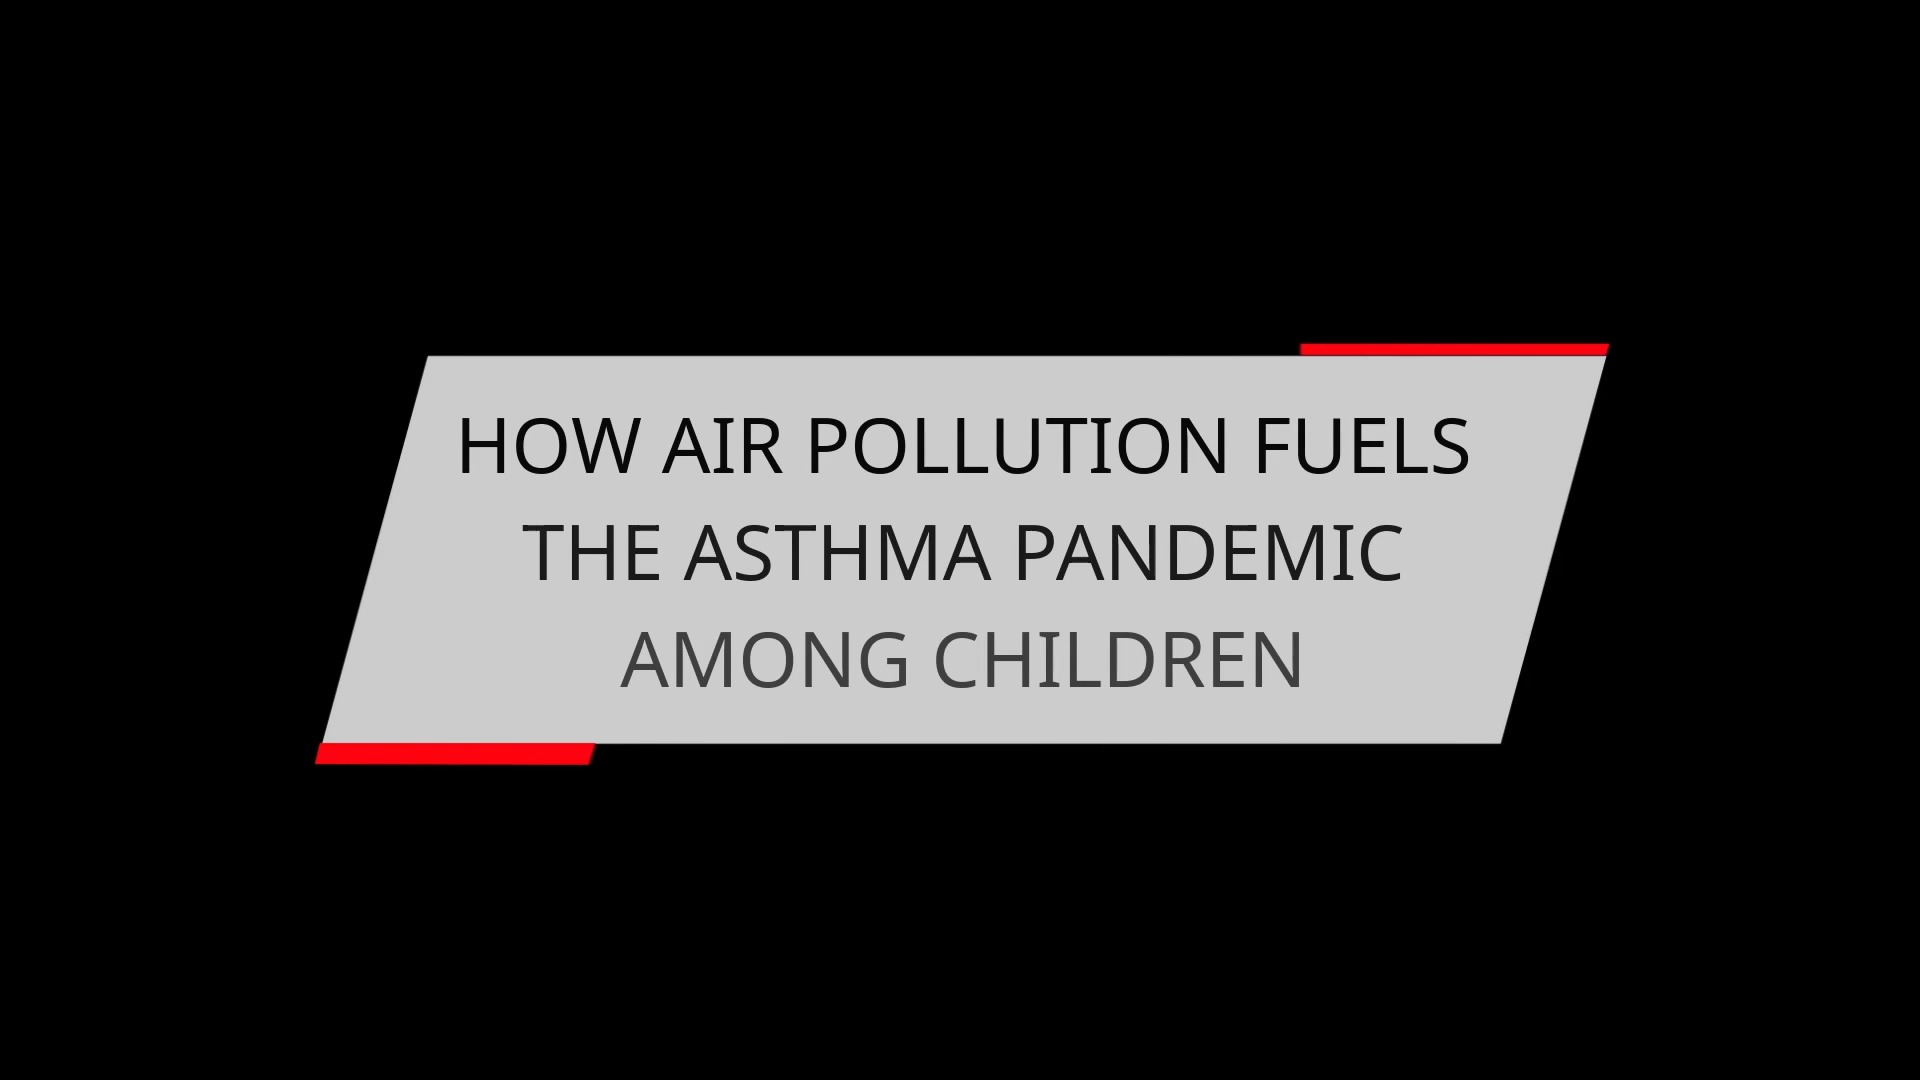 HOW AIR POLLUTION FUELS THE ASTHMA PANDEMIC AMONG CHILDREN